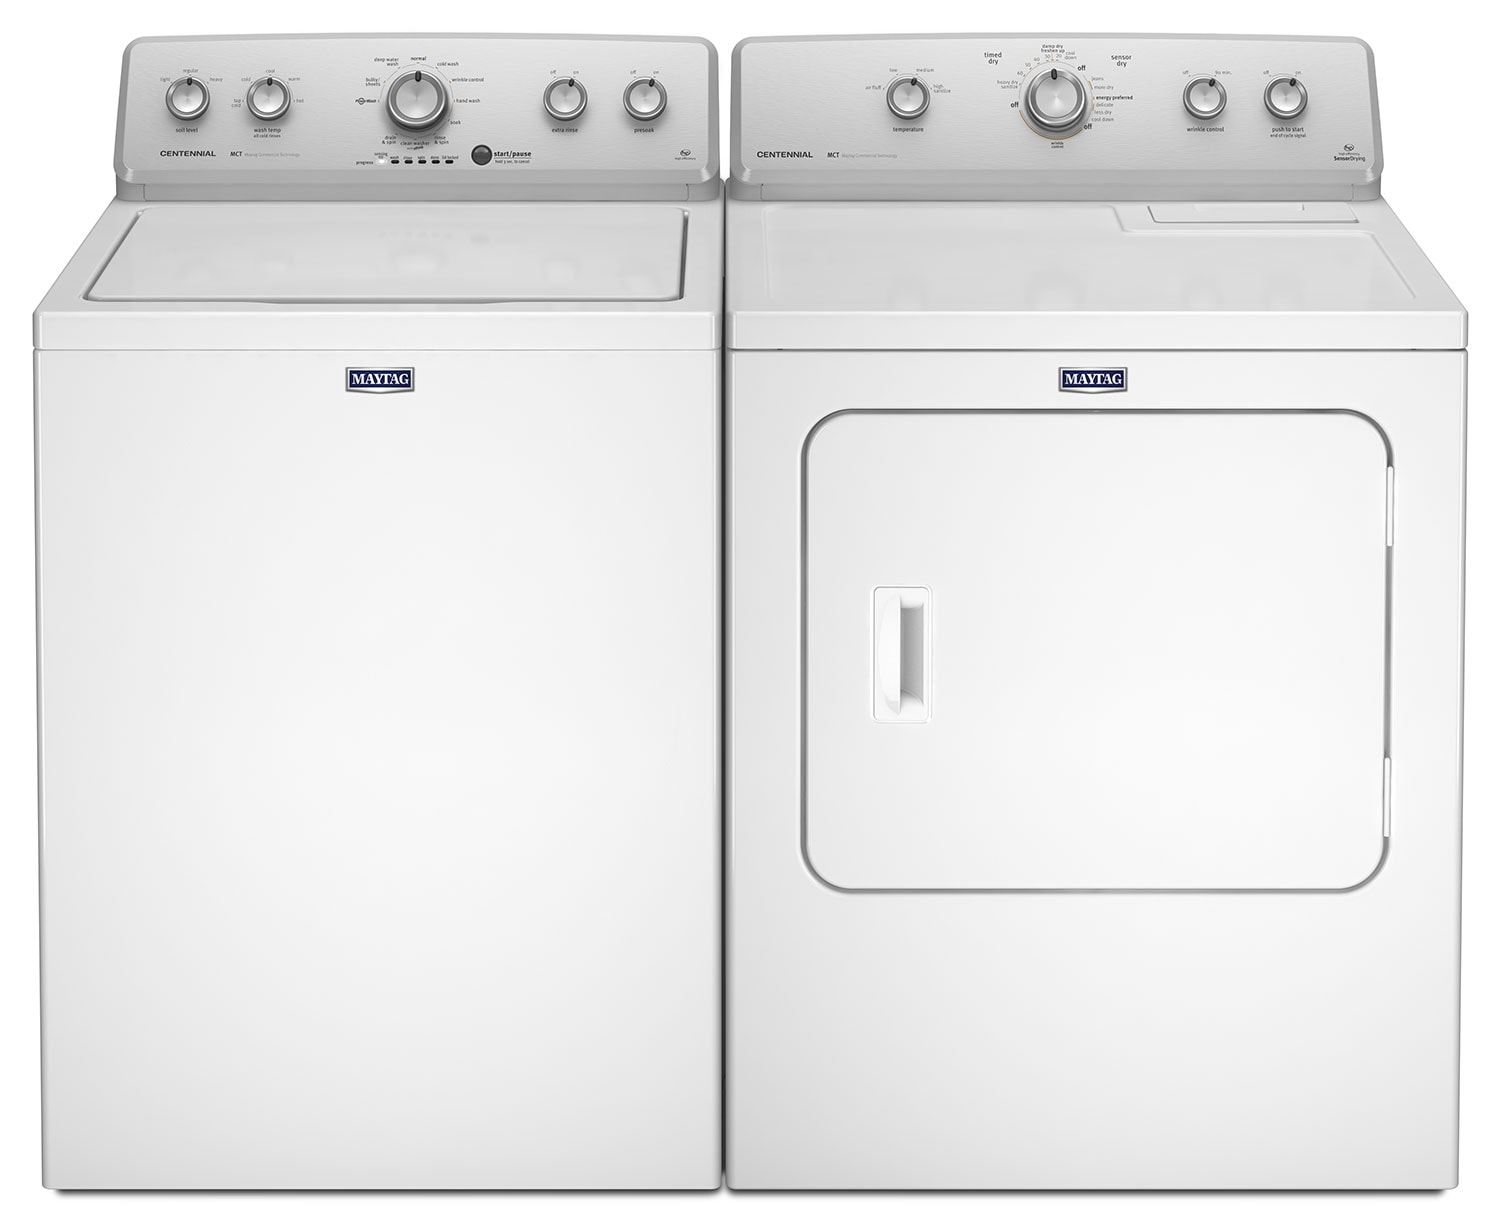 Washers and Dryers - Maytag® 4.2 Cu. Ft. Top-Load Washing Machine and 7.0 Cu. Ft. Gas Dryer - White